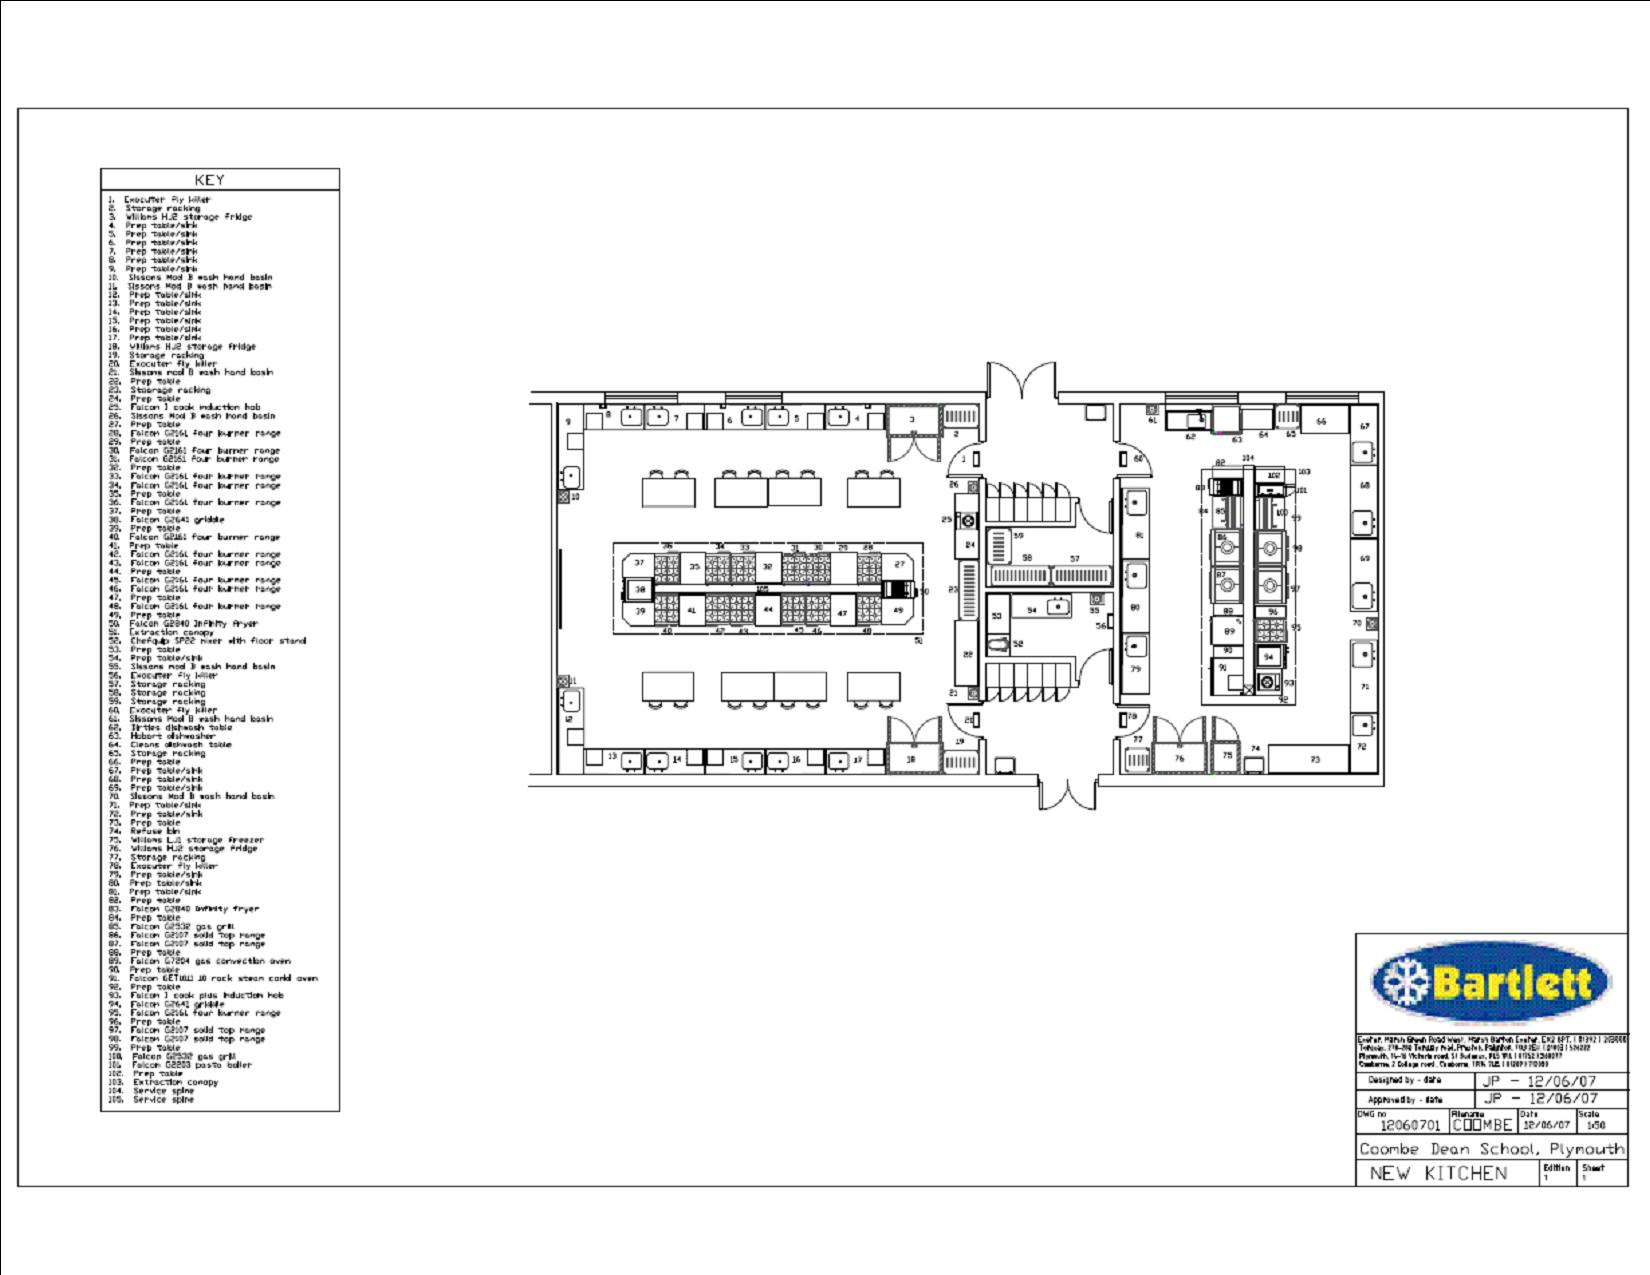 School kitchen design layout planning cad advice devon for Planning a kitchen layout